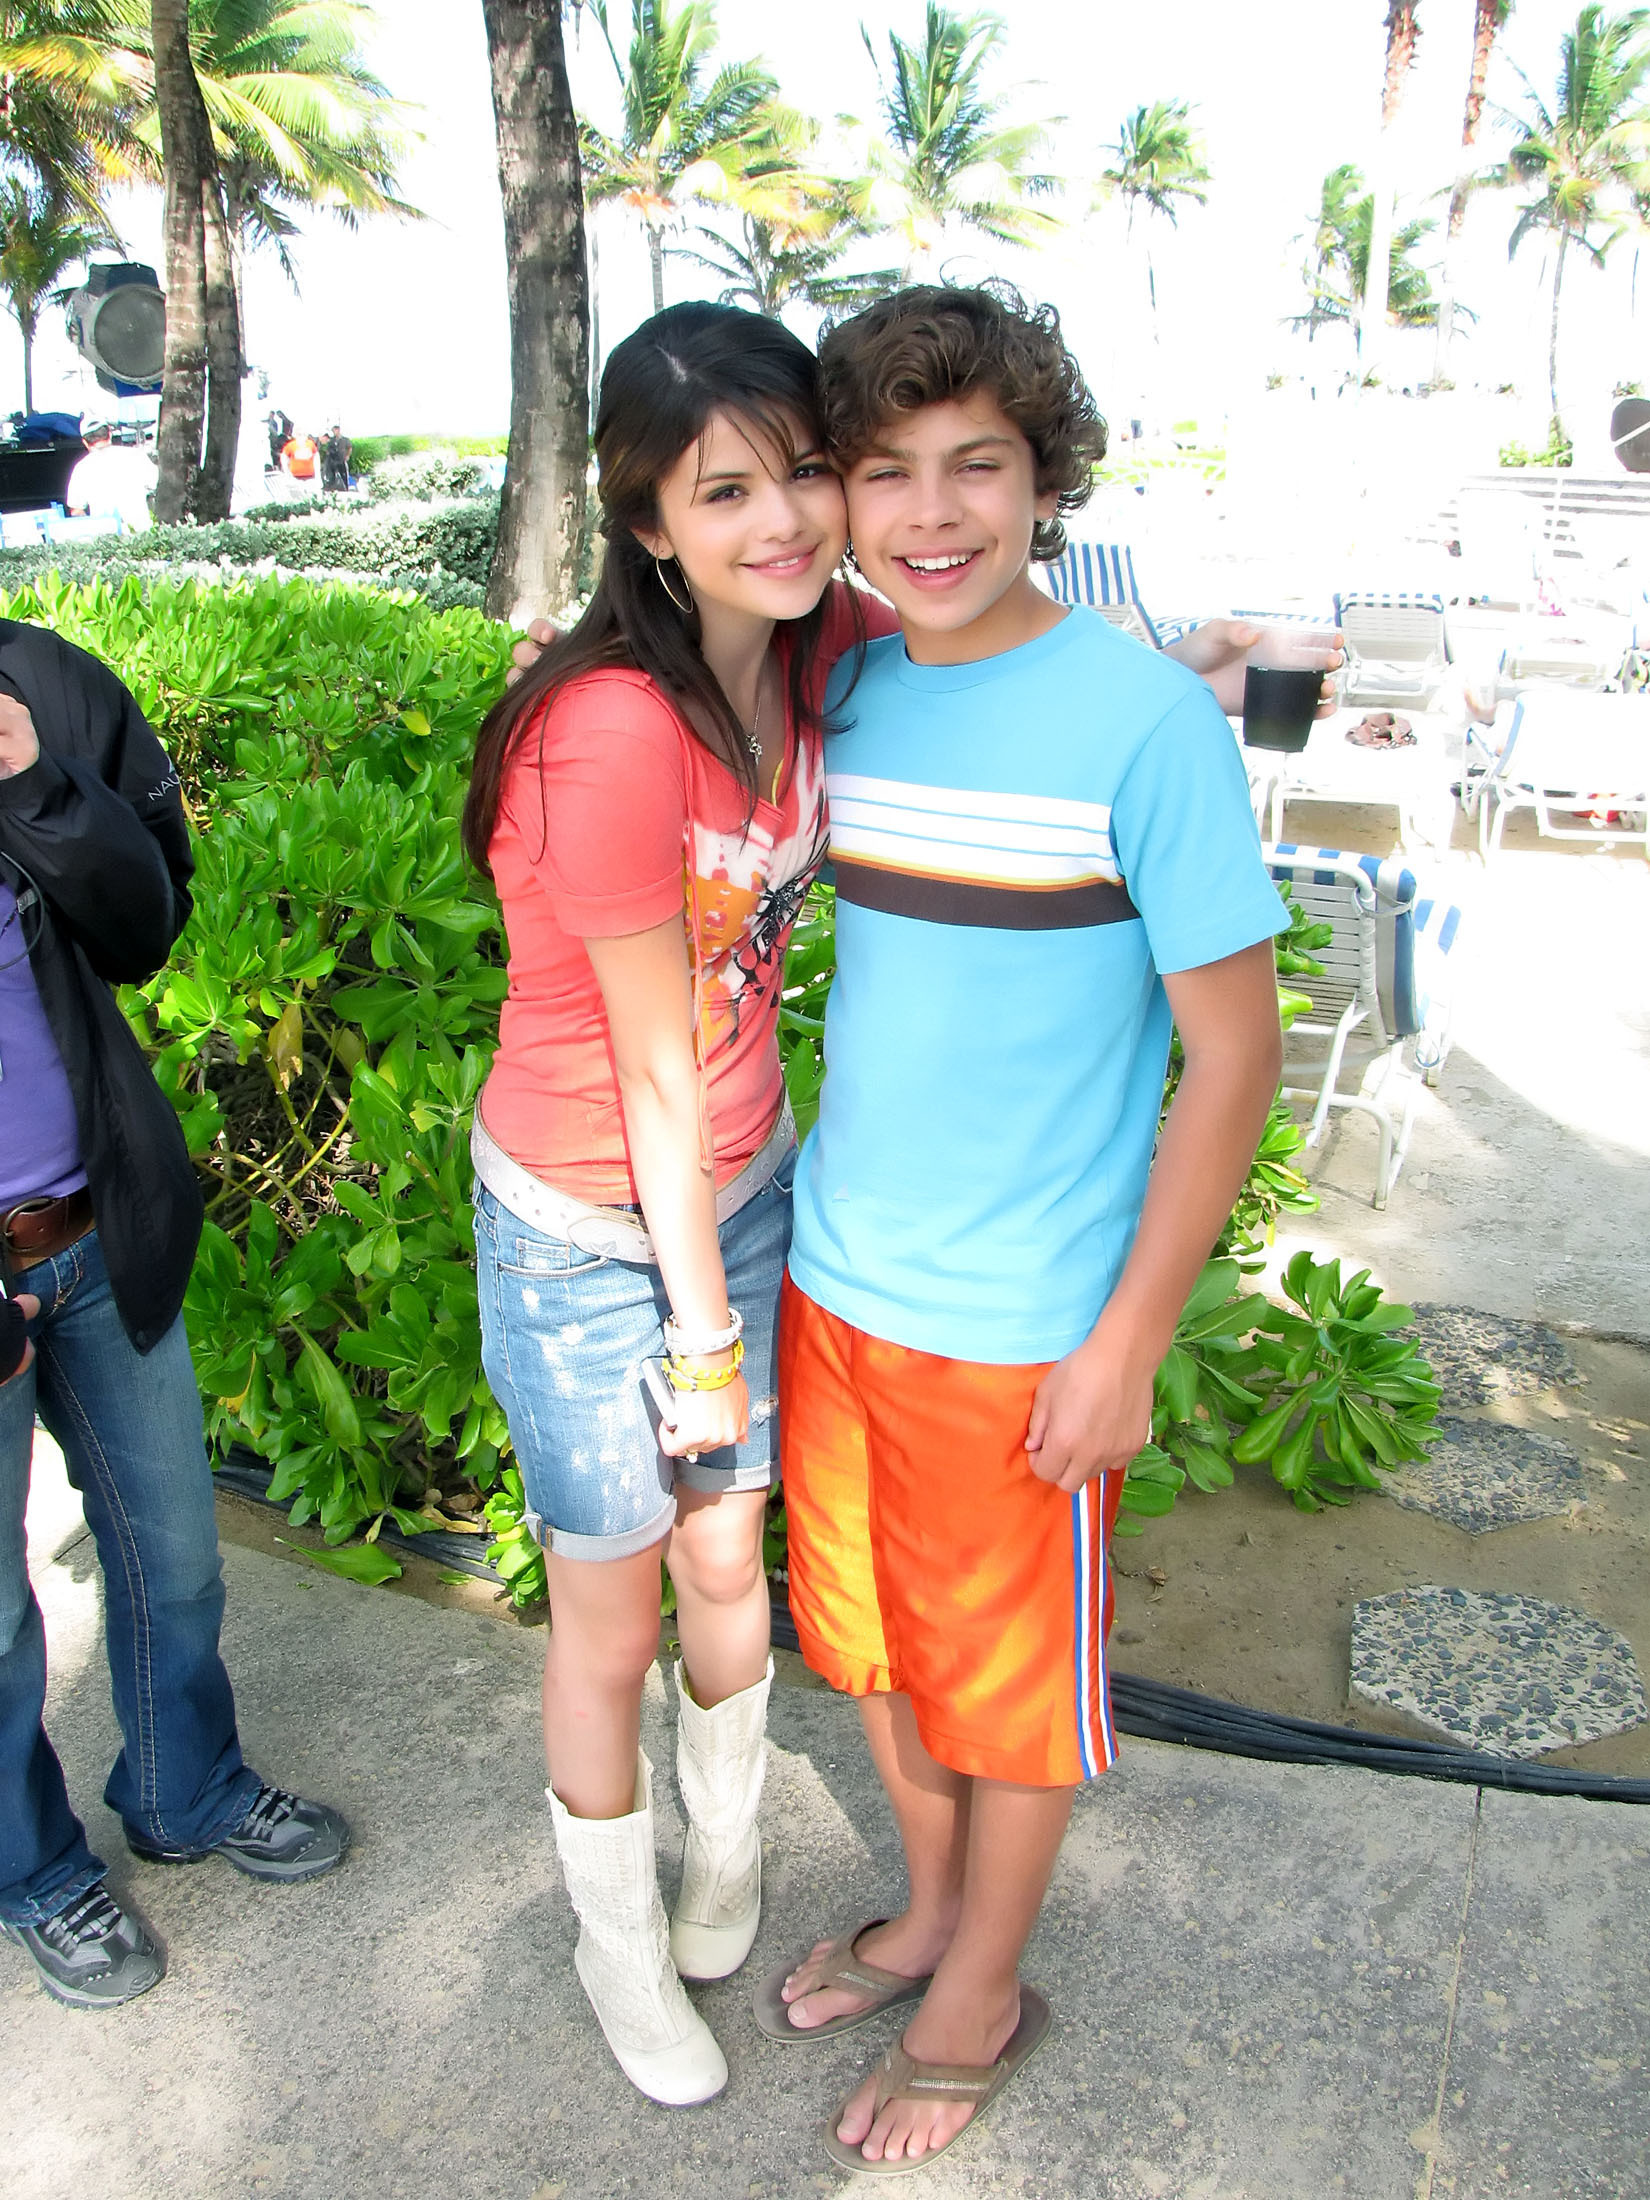 WOWP Movie - Jake T. Austin Photo (6785588) - Fanpop